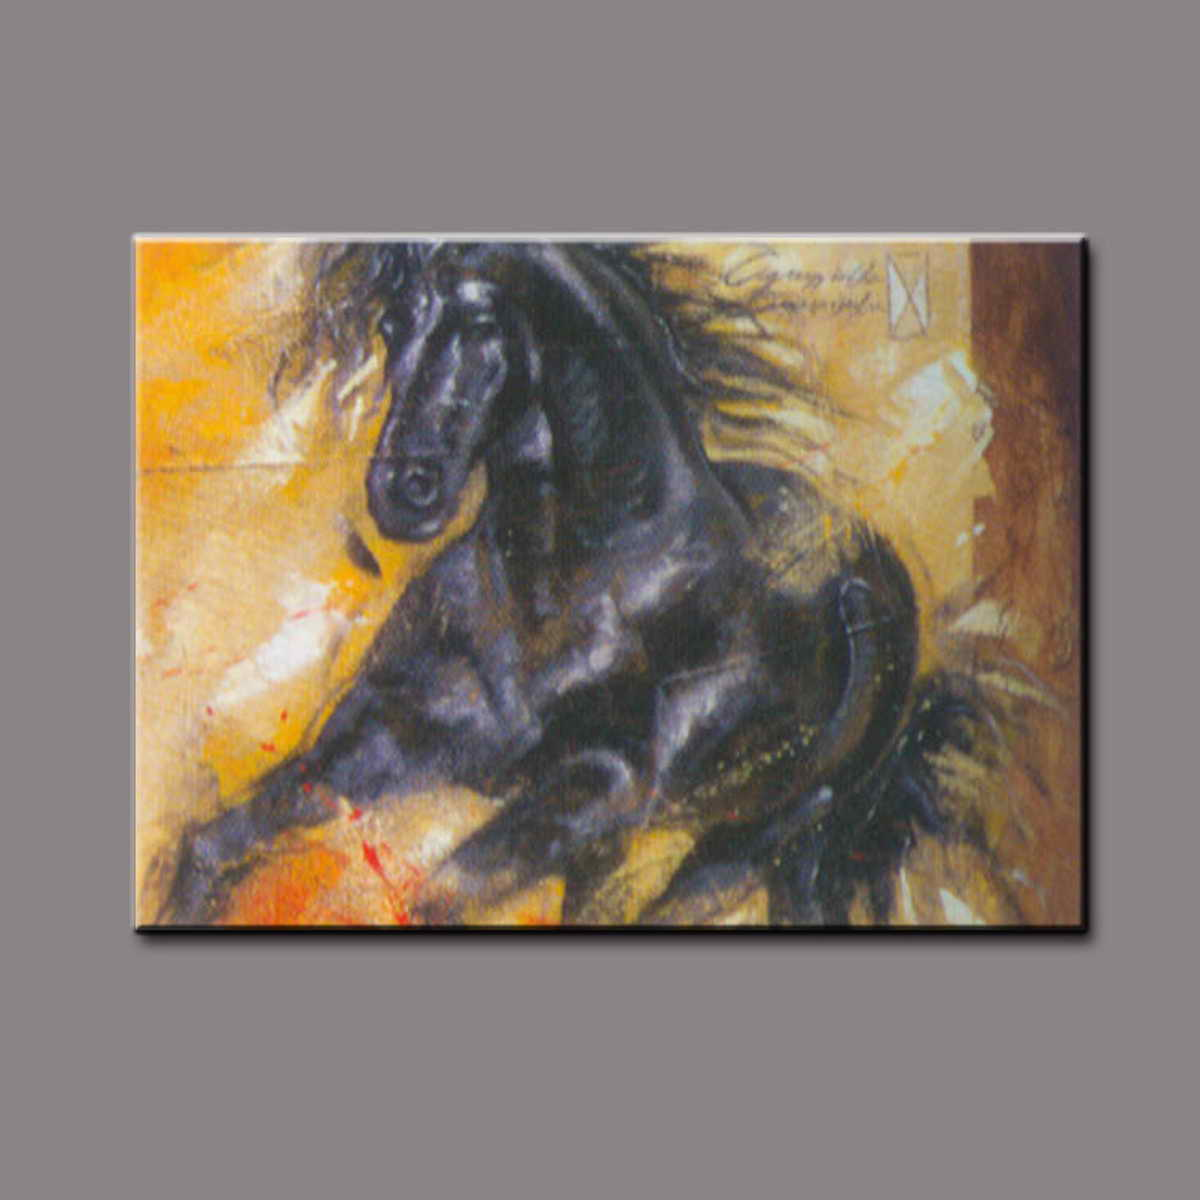 Handpainted impressionist canvas running black horse oil painting with frame